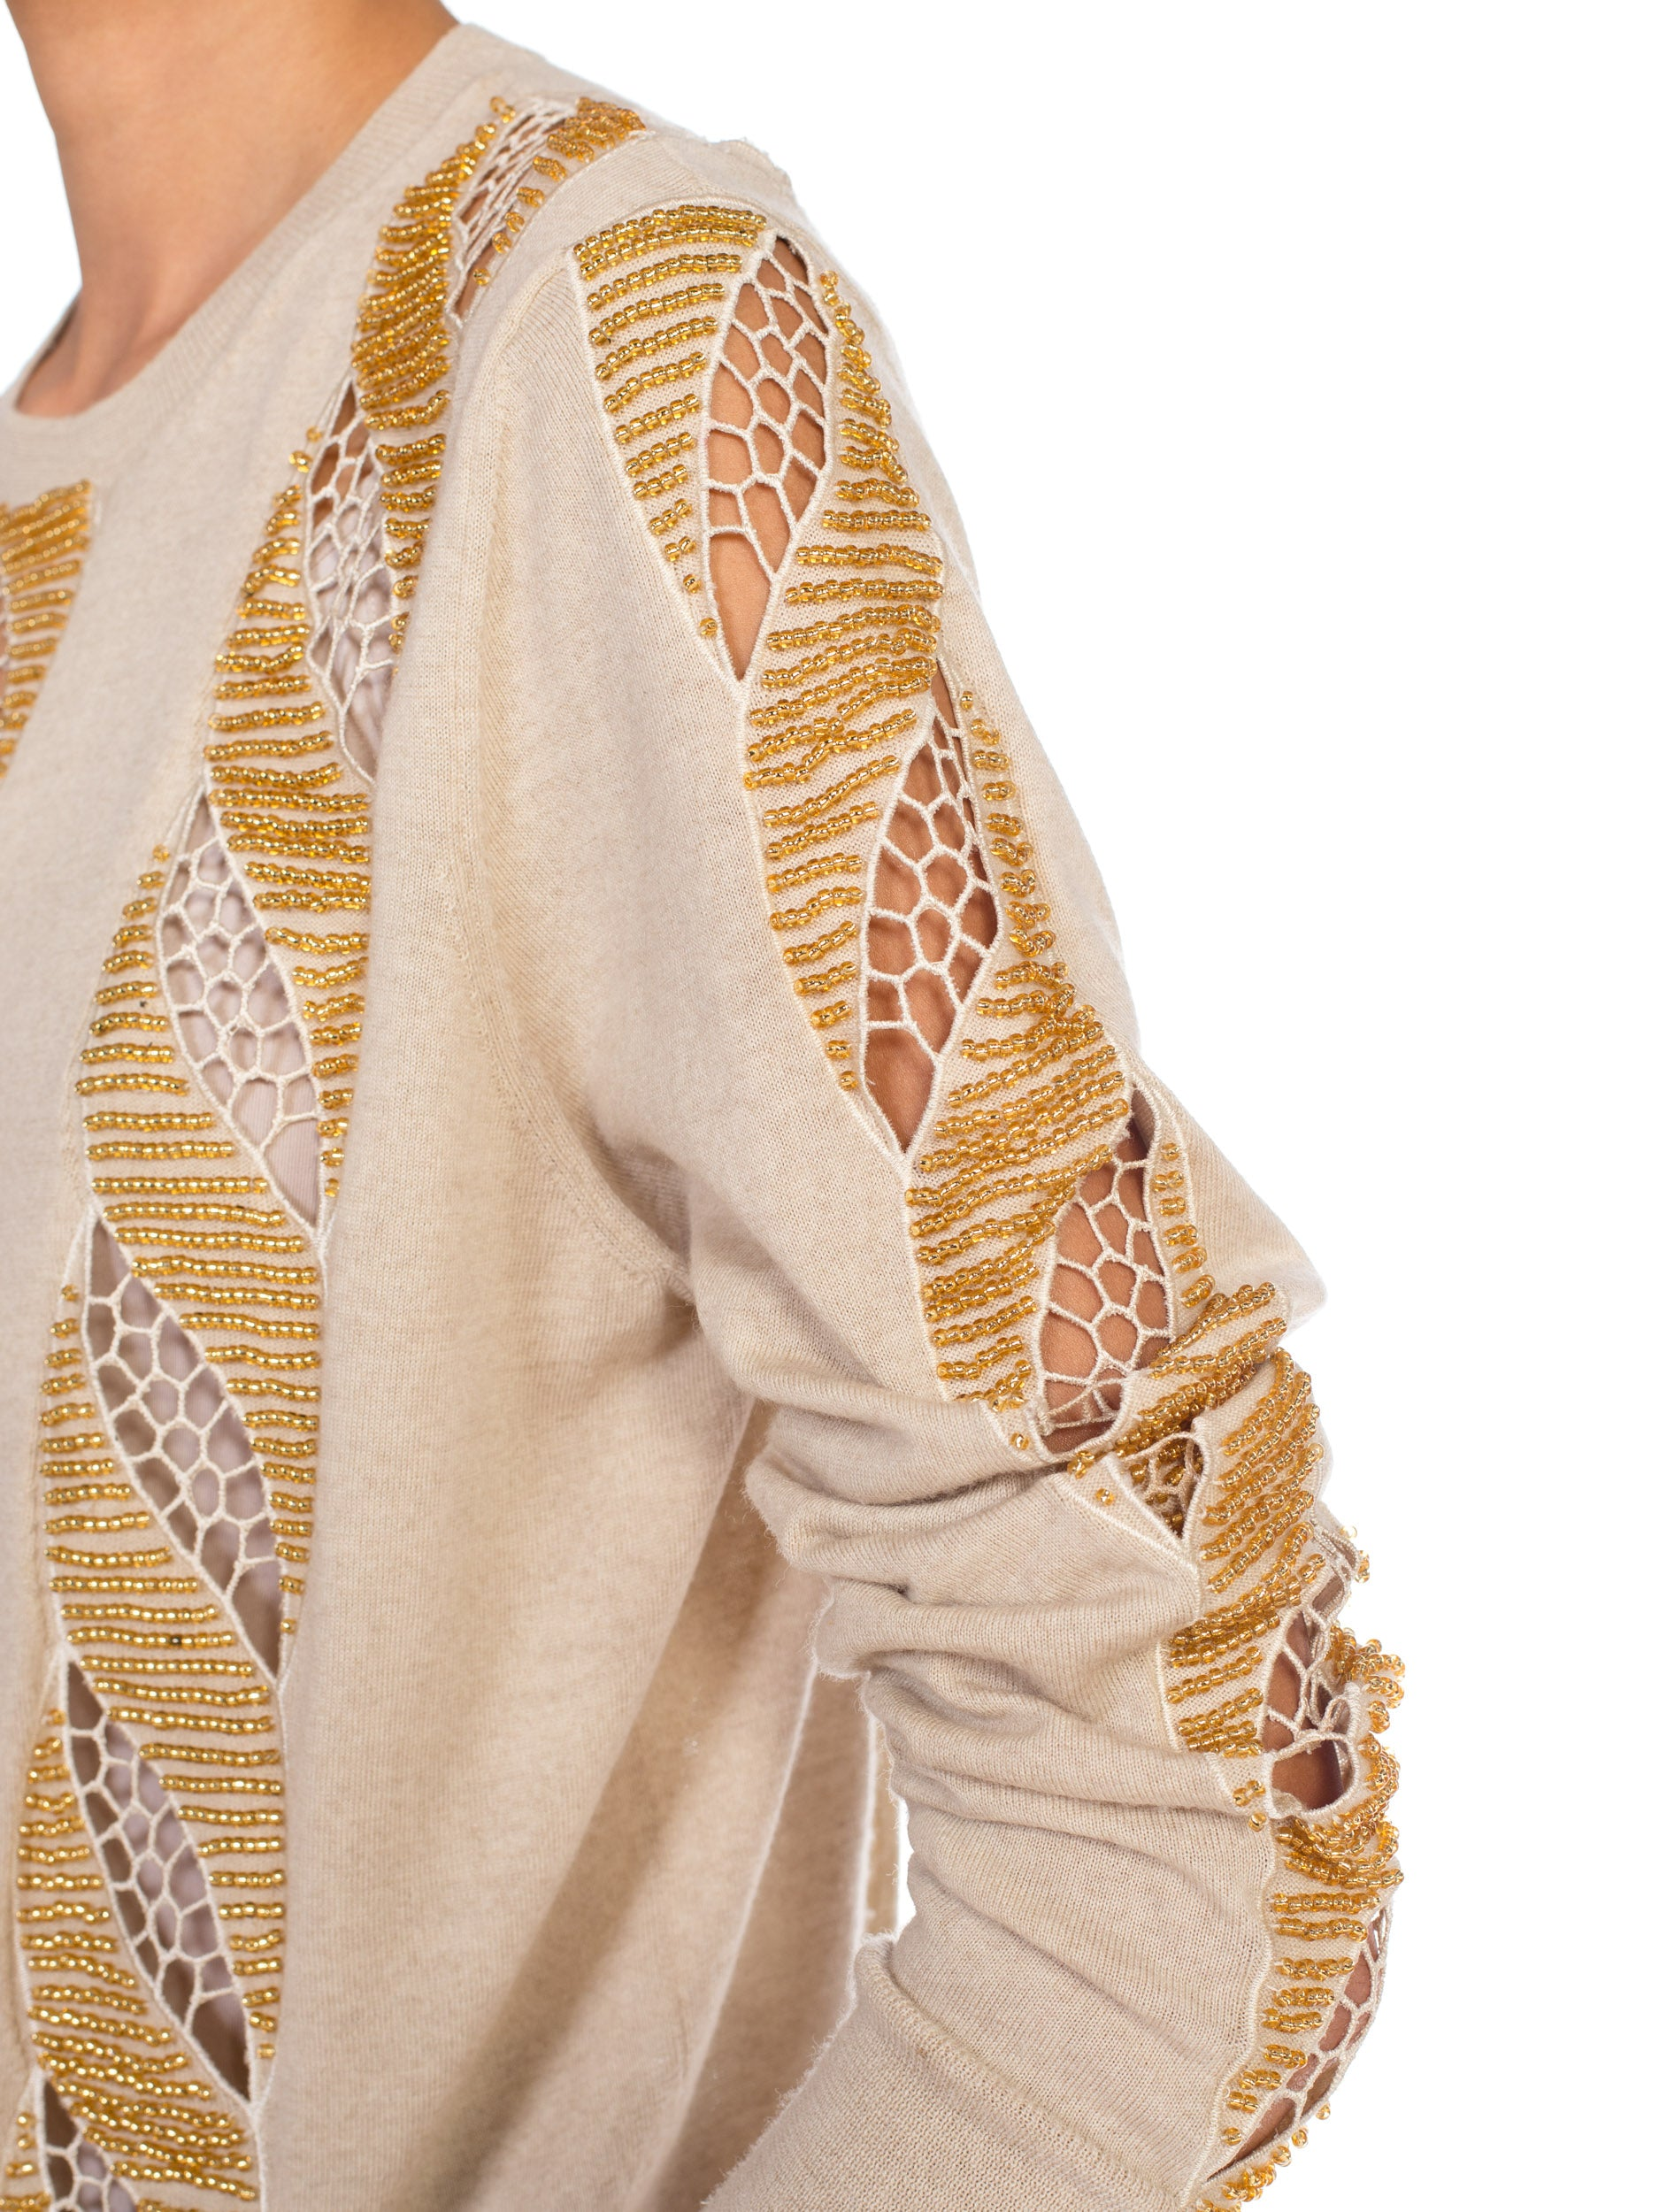 2000S DRIES VAN NOTEN Beige Wool Knit Gold Beaded Lace Cut Out Sweater